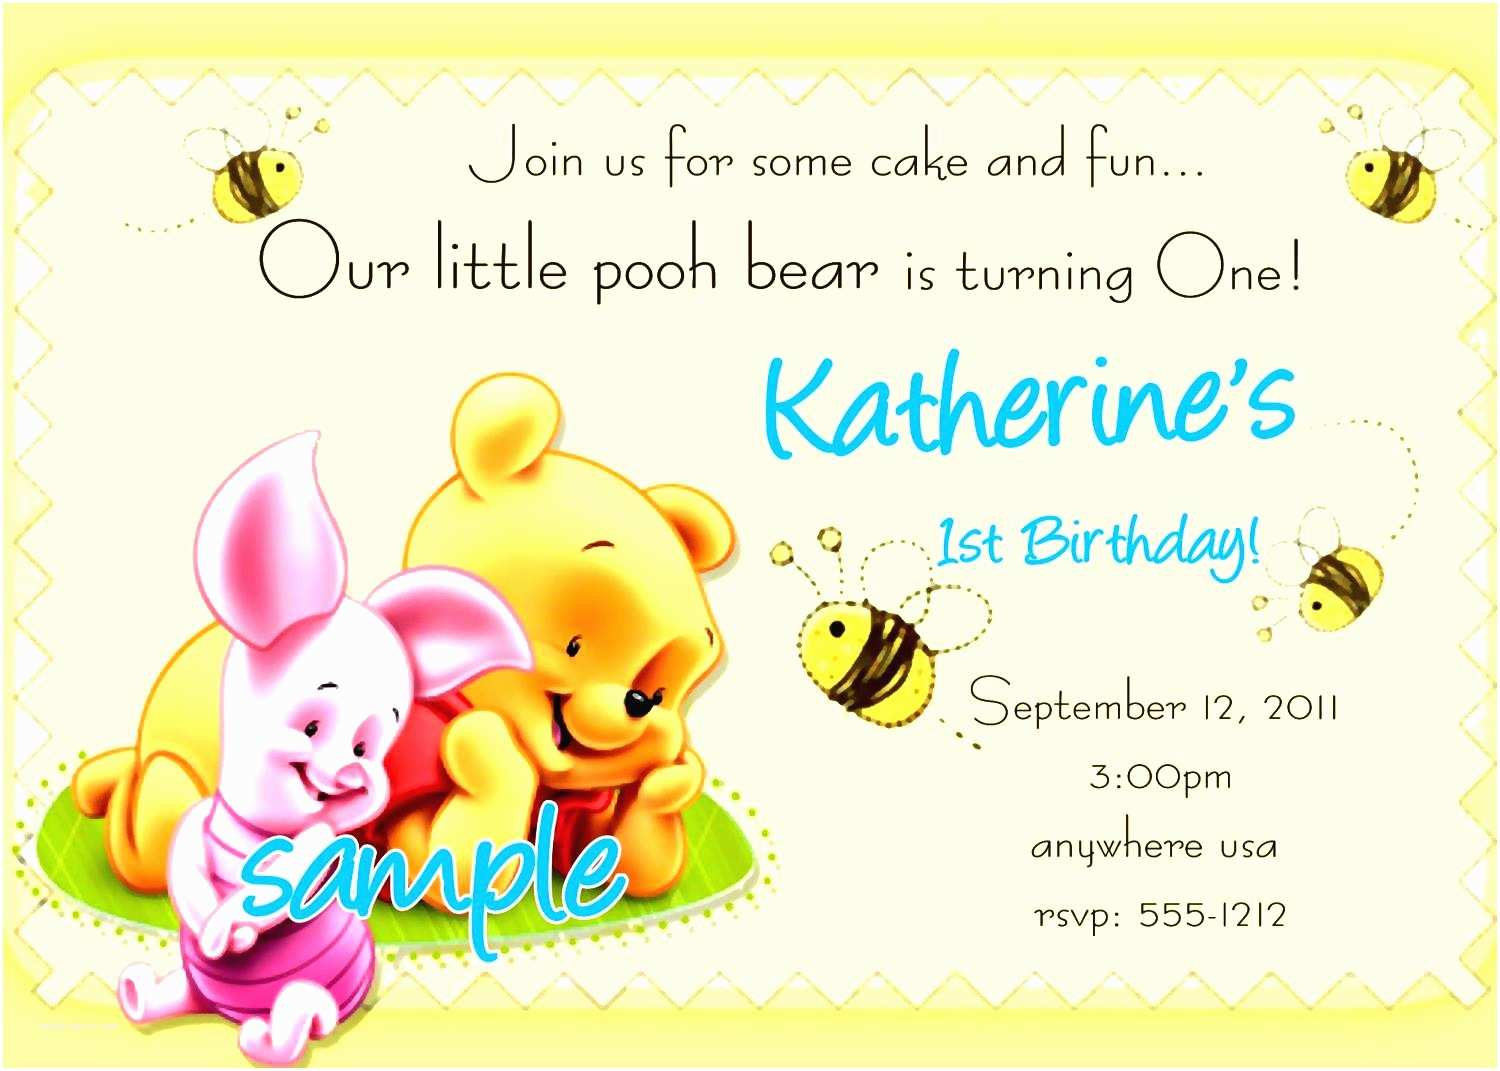 Birthday Party Invitation Text 21 Kids Wording That We Can Make